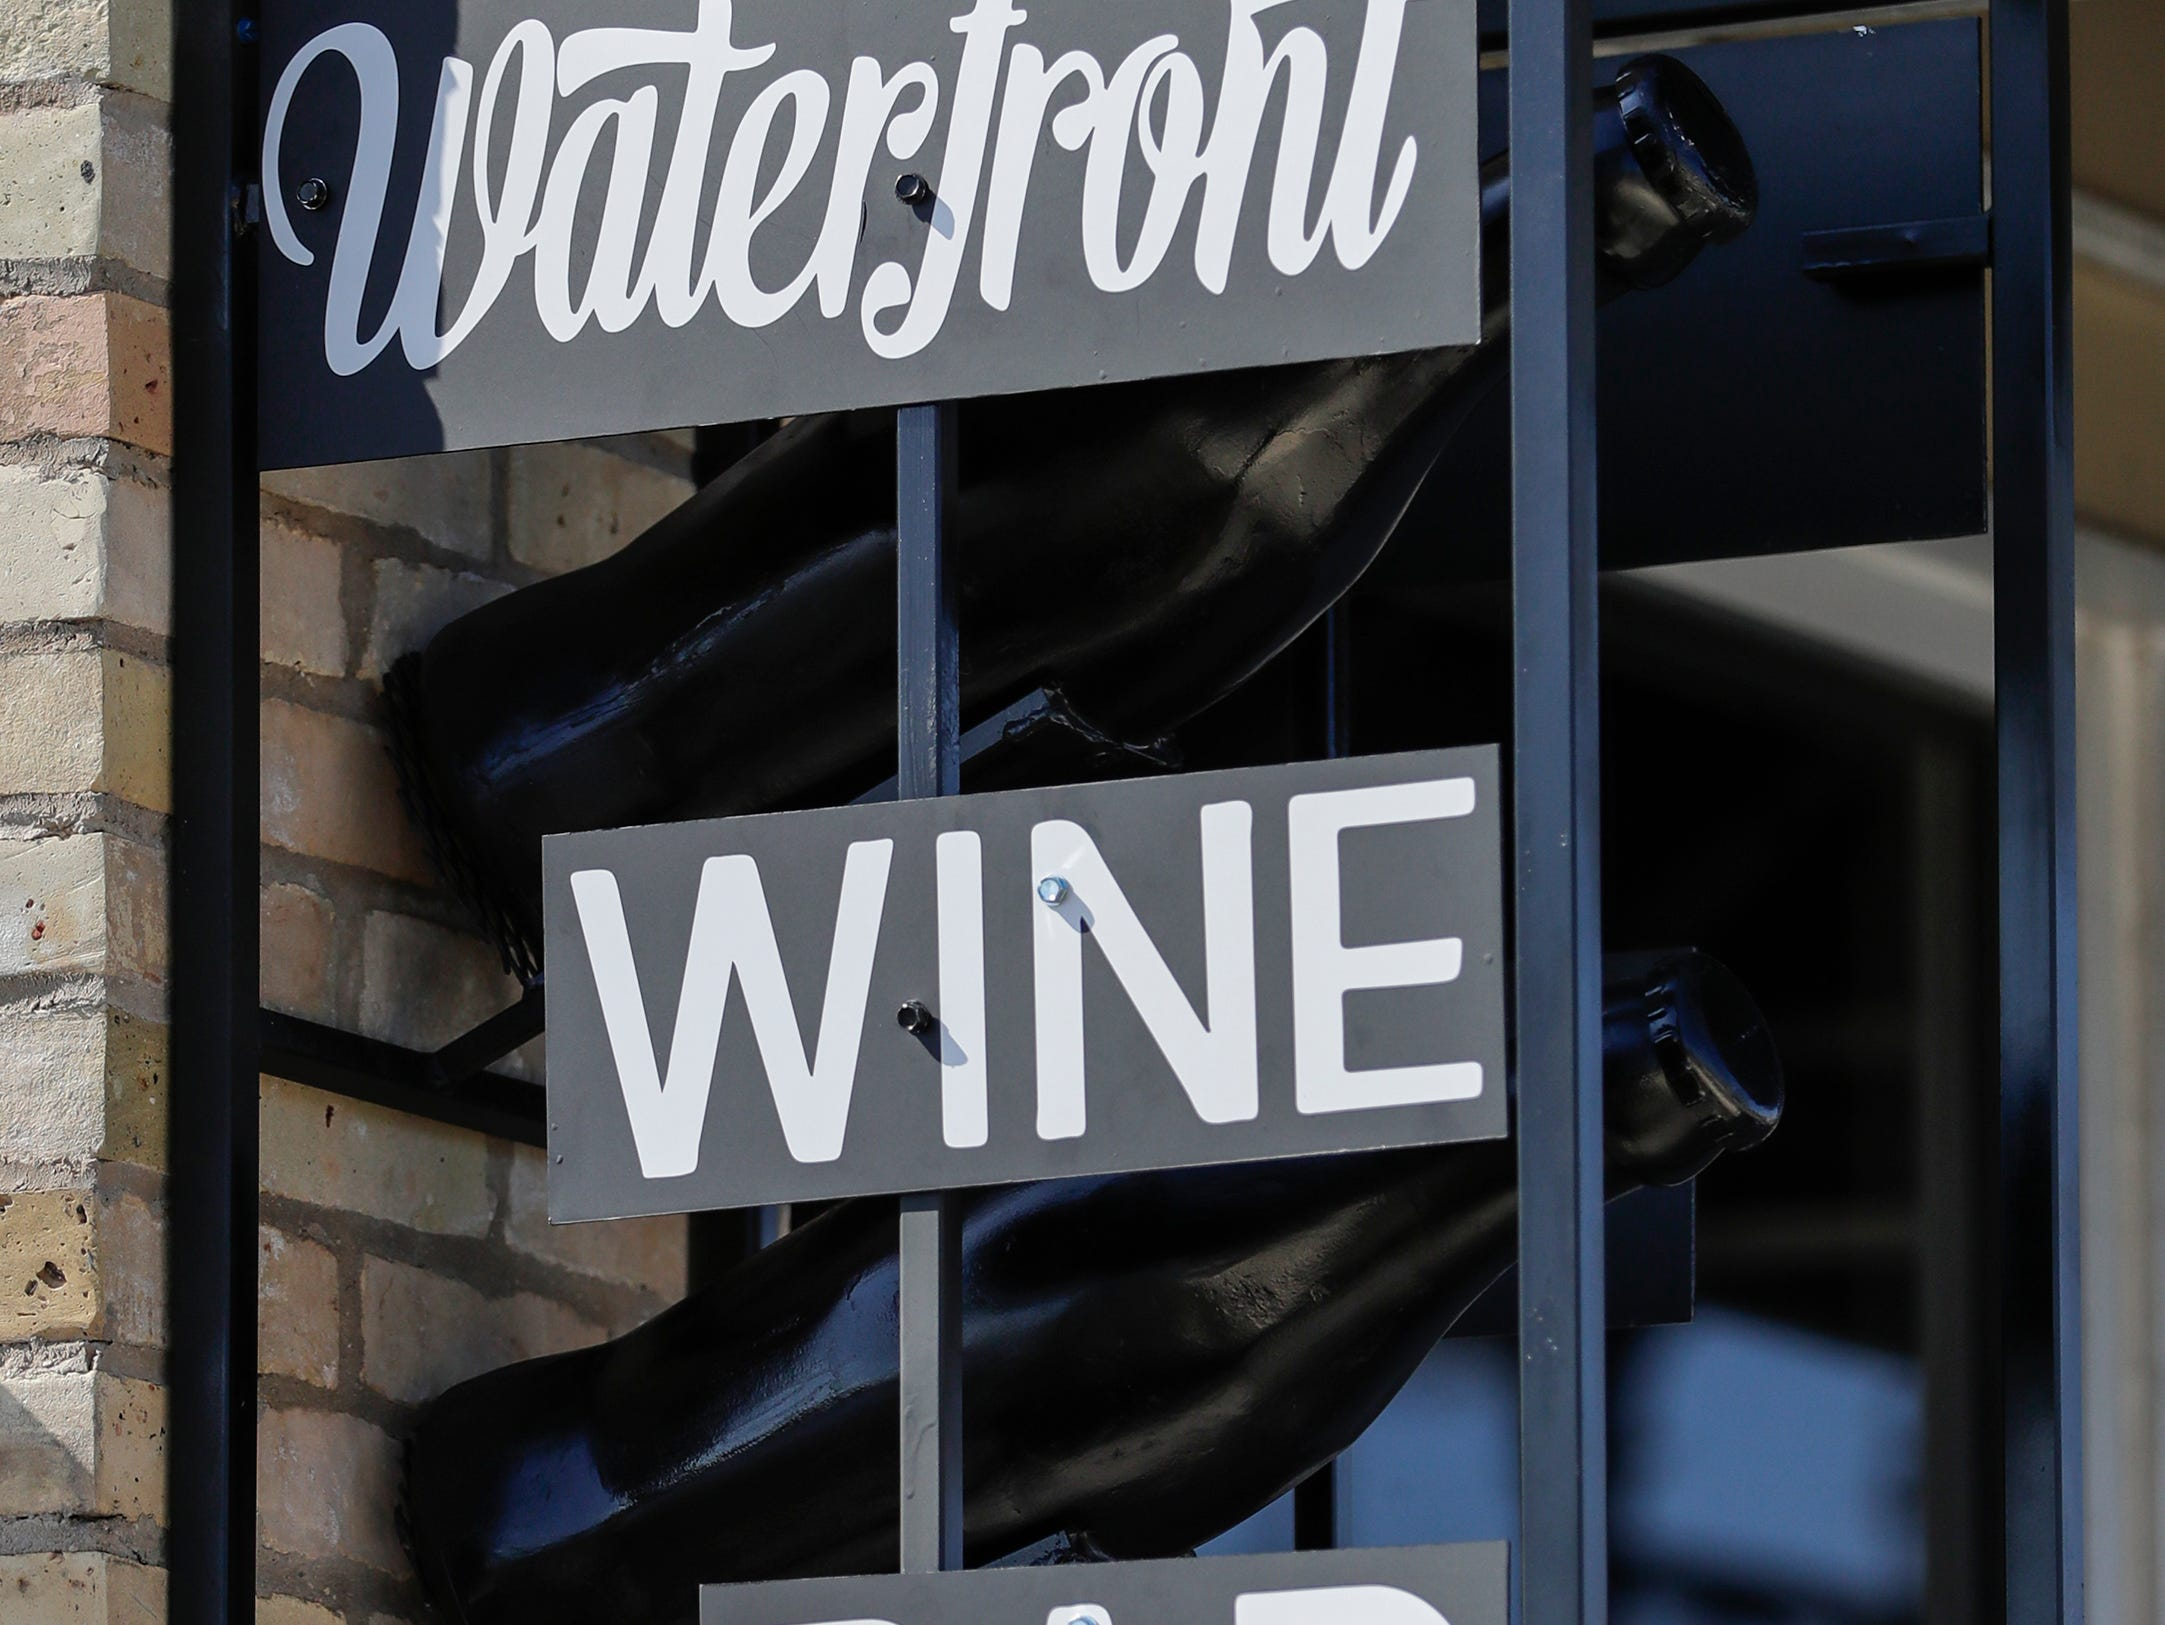 A small sign at street level for the Waterfront Wine Bar Saturday, May 4, 2019, in Manitowoc, Wis. Joshua Clark/USA TODAY NETWORK-Wisconsin